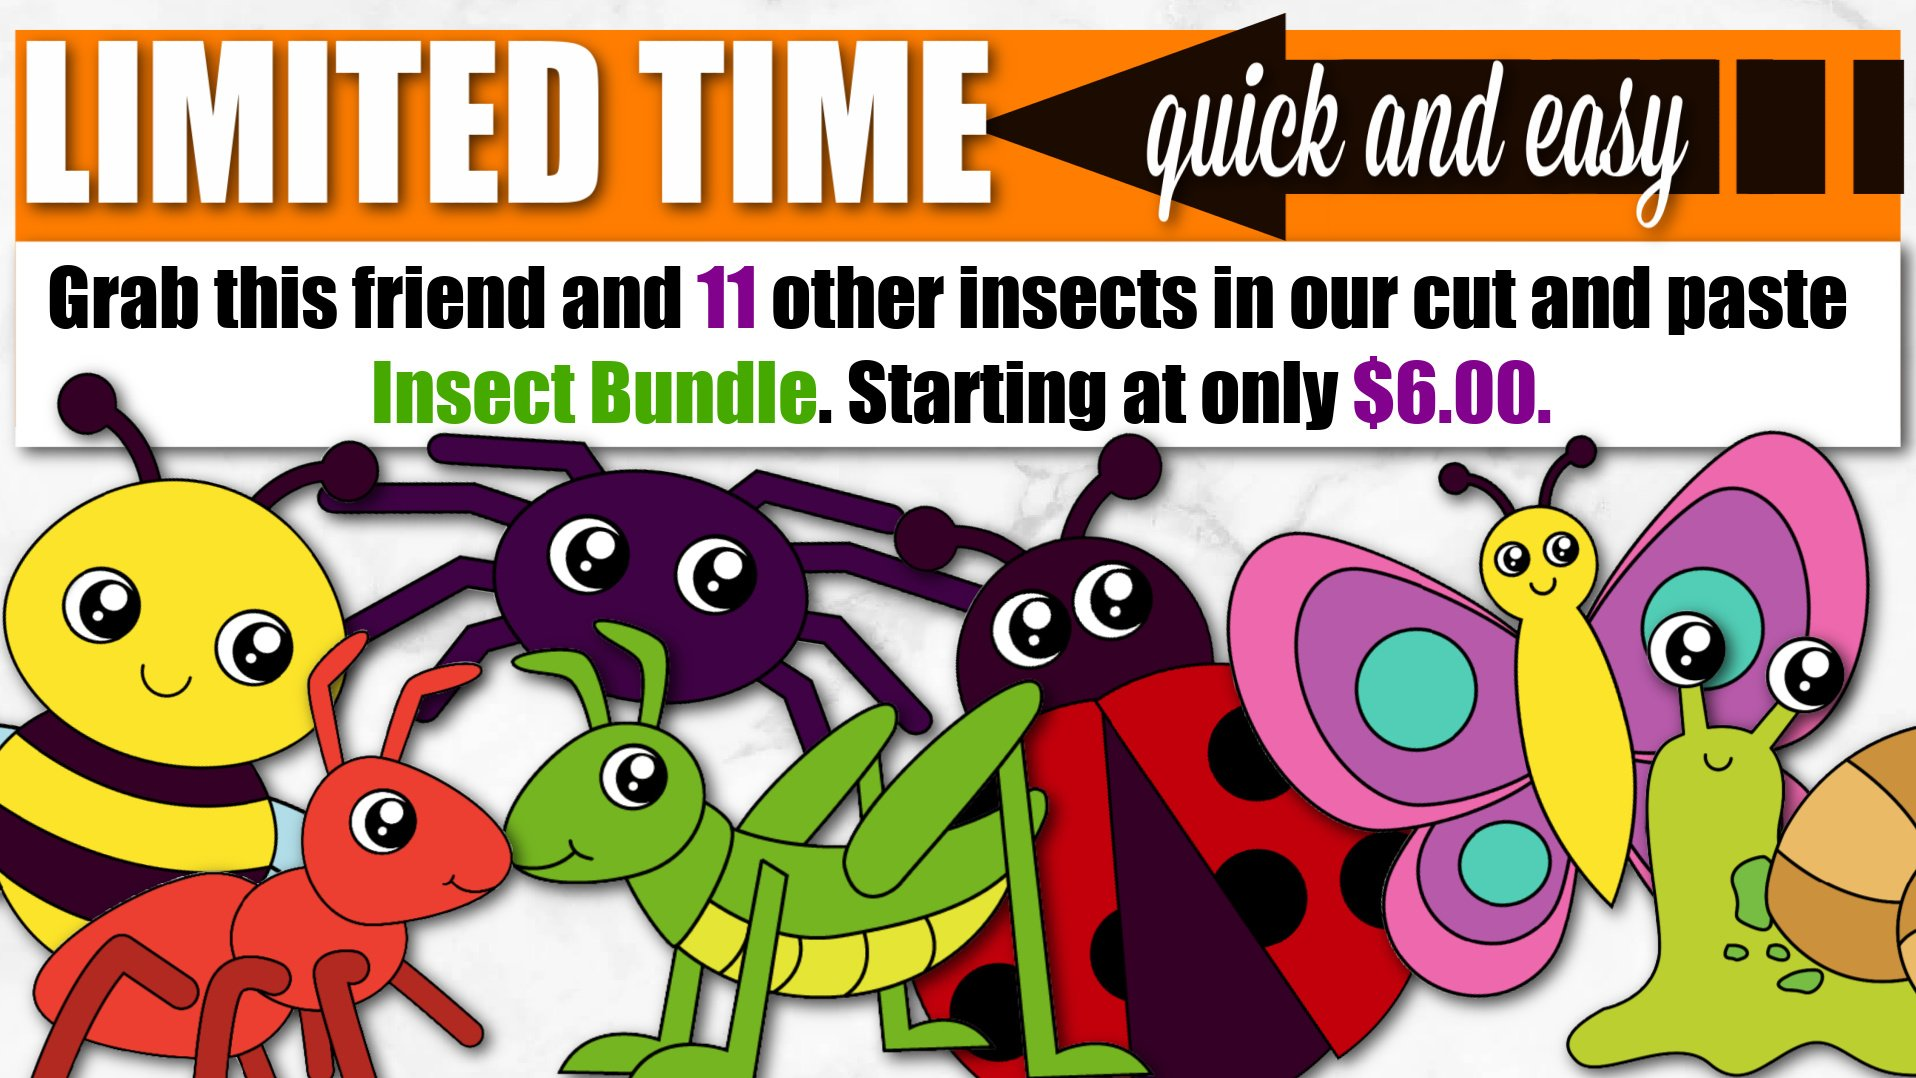 Easy Printable Cut and Paste Bug Crafts for kids, preschoolers and toddlers for summer crafts